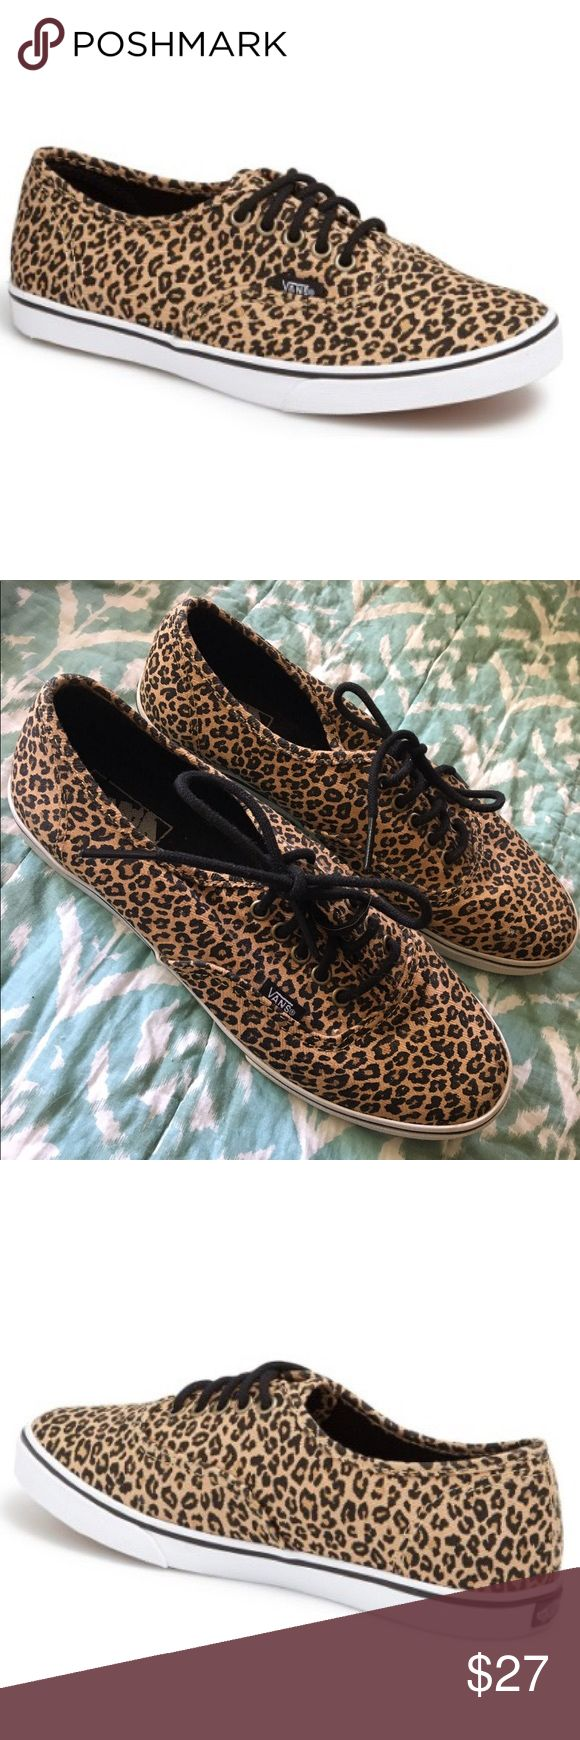 Women's Vans Authentic Lo Pro Leopard Sneaker Women's Vans Authentic Lo Pro Leopard Sneaker. Size 8.5. Only worn once, excellent condition. Purchased from Nordstrom. Vans Shoes Sneakers